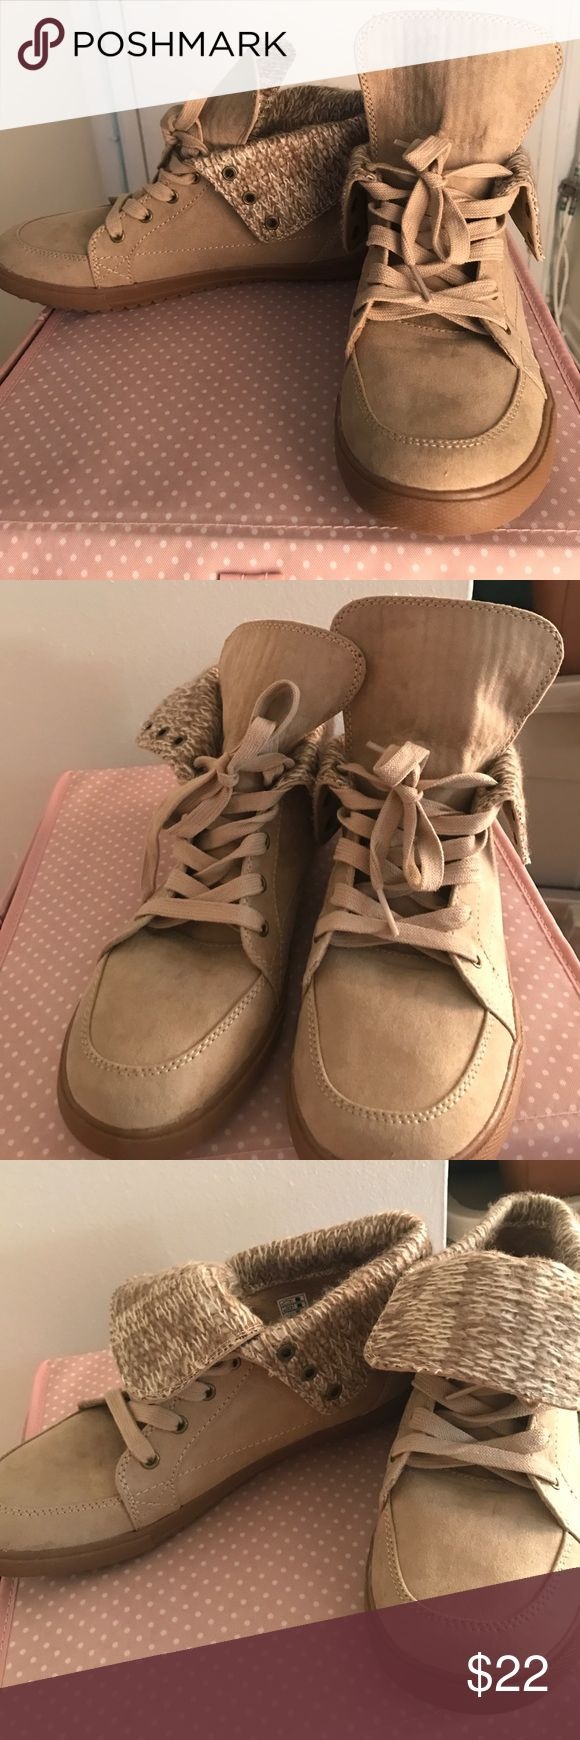 NWOT never worn nude ankle boots! Never worn and ate in fantastic shape. Tops of the shoes and gold or stay up for dual looks. Color is an oatmeal. Rocket Dog Shoes Ankle Boots & Booties